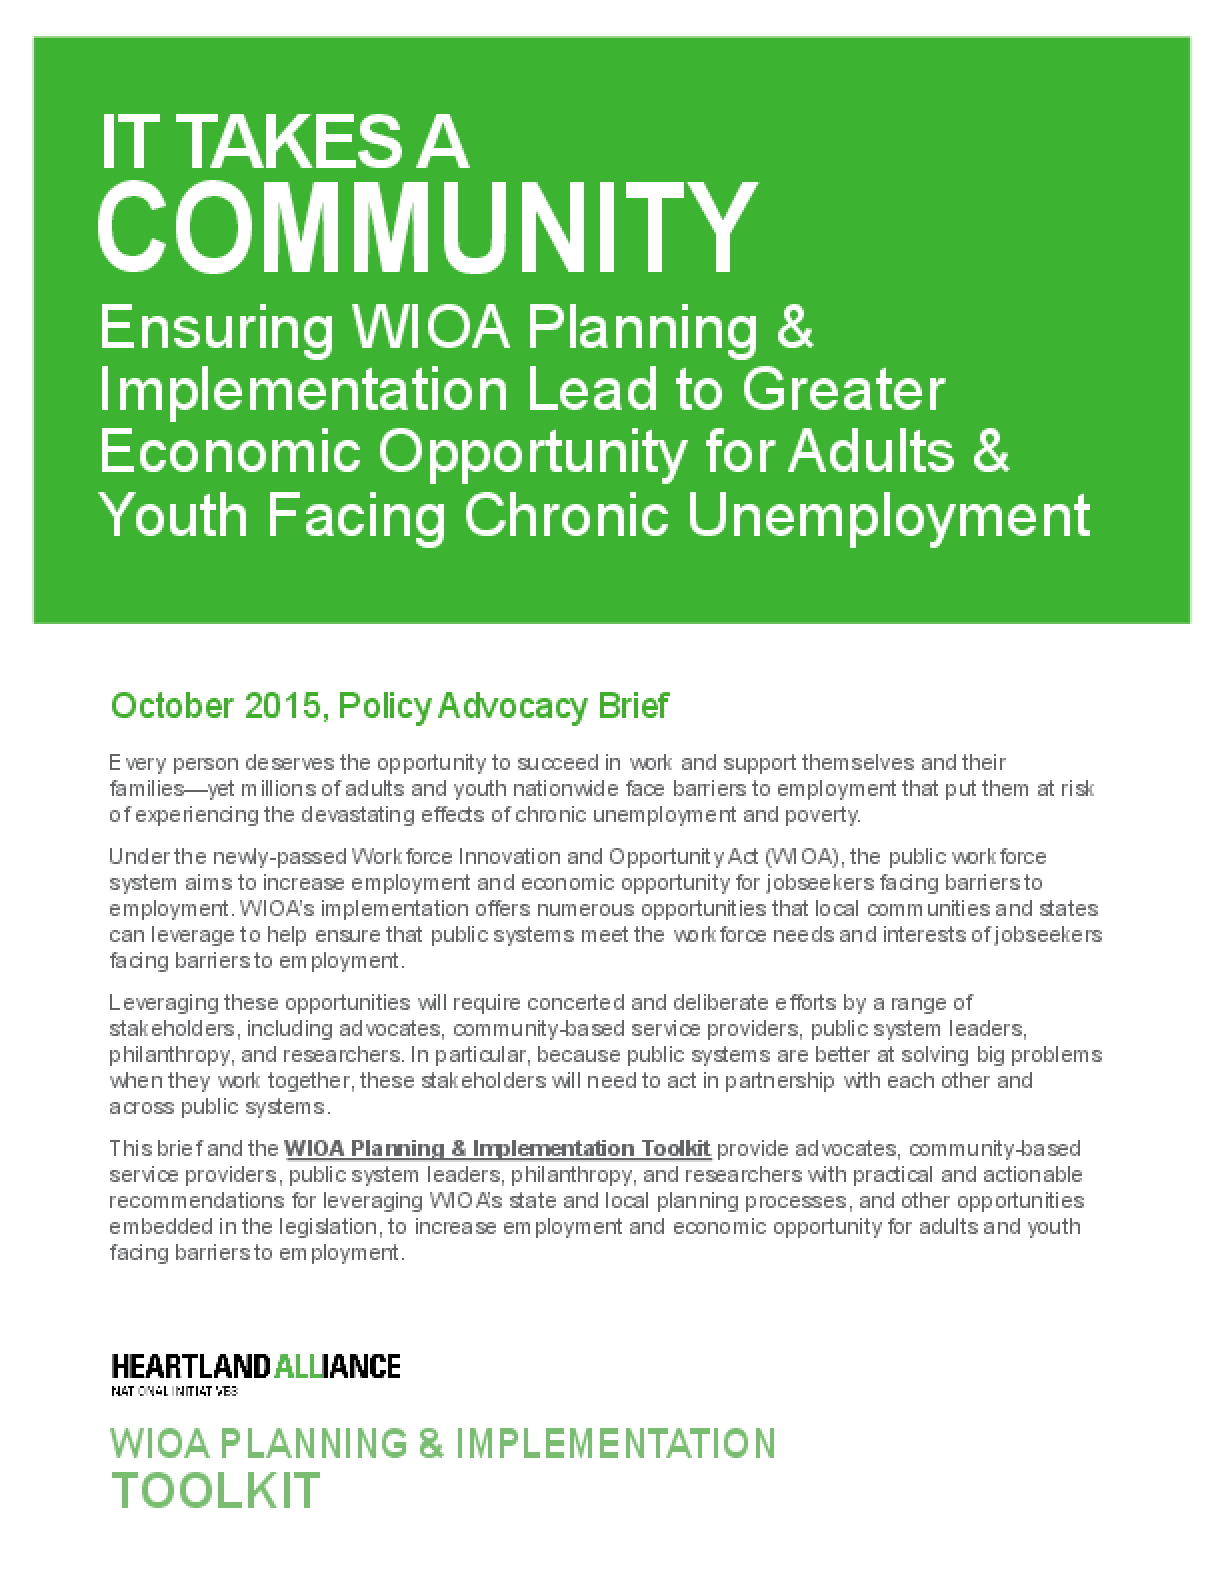 It Takes a Community: Ensuring WIOA Planning and Implementation Lead to Greater Economic Opportunity for Adults and Youth Facing Chronic Unemployment